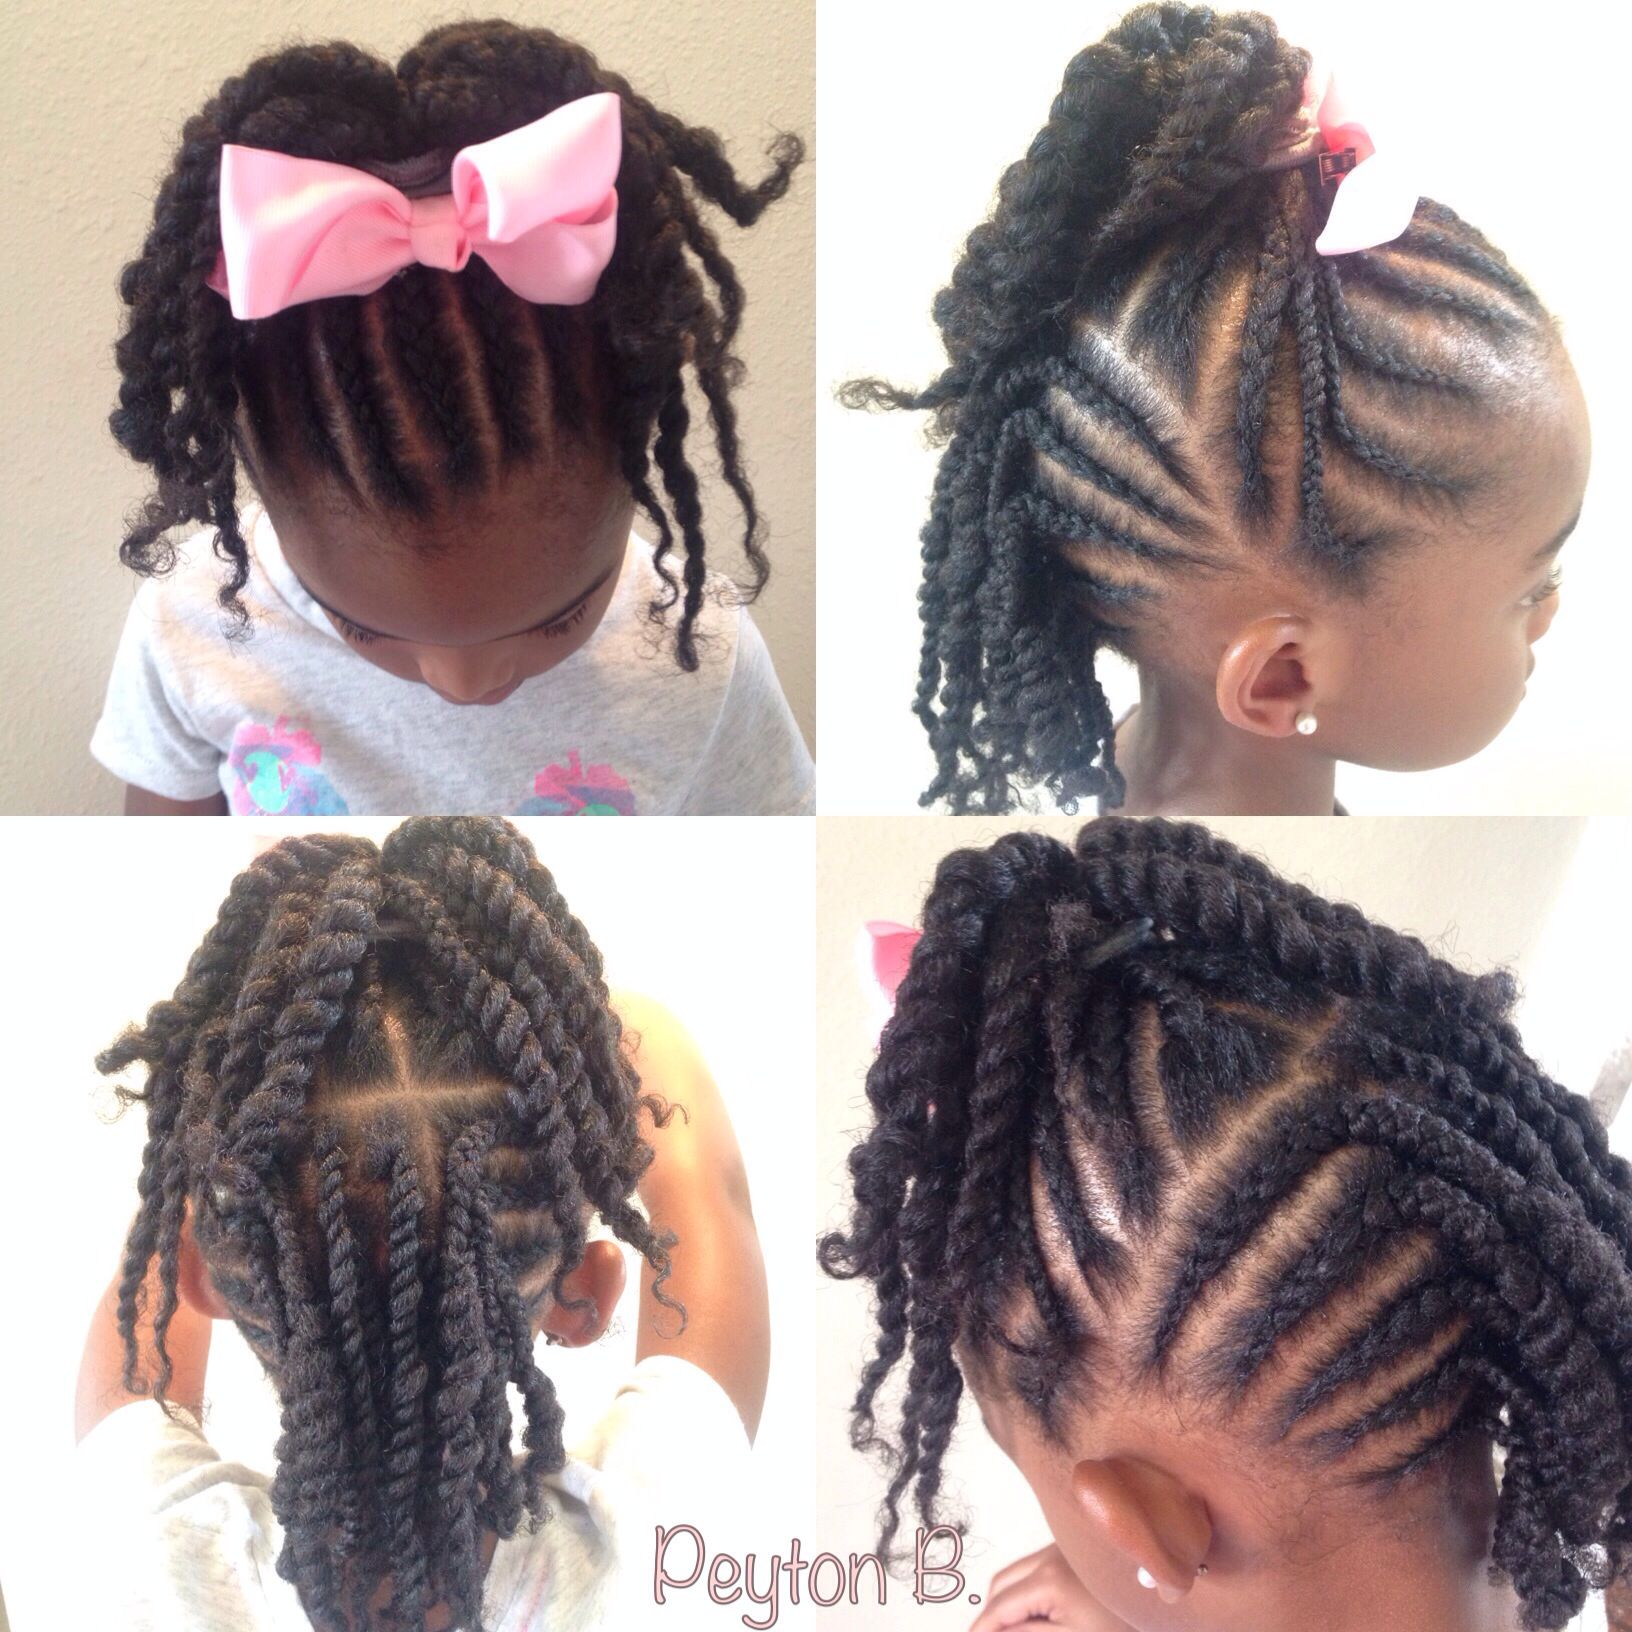 Top: Cornrows with ends twisted up into ponytail. Back: Cornrows   ...